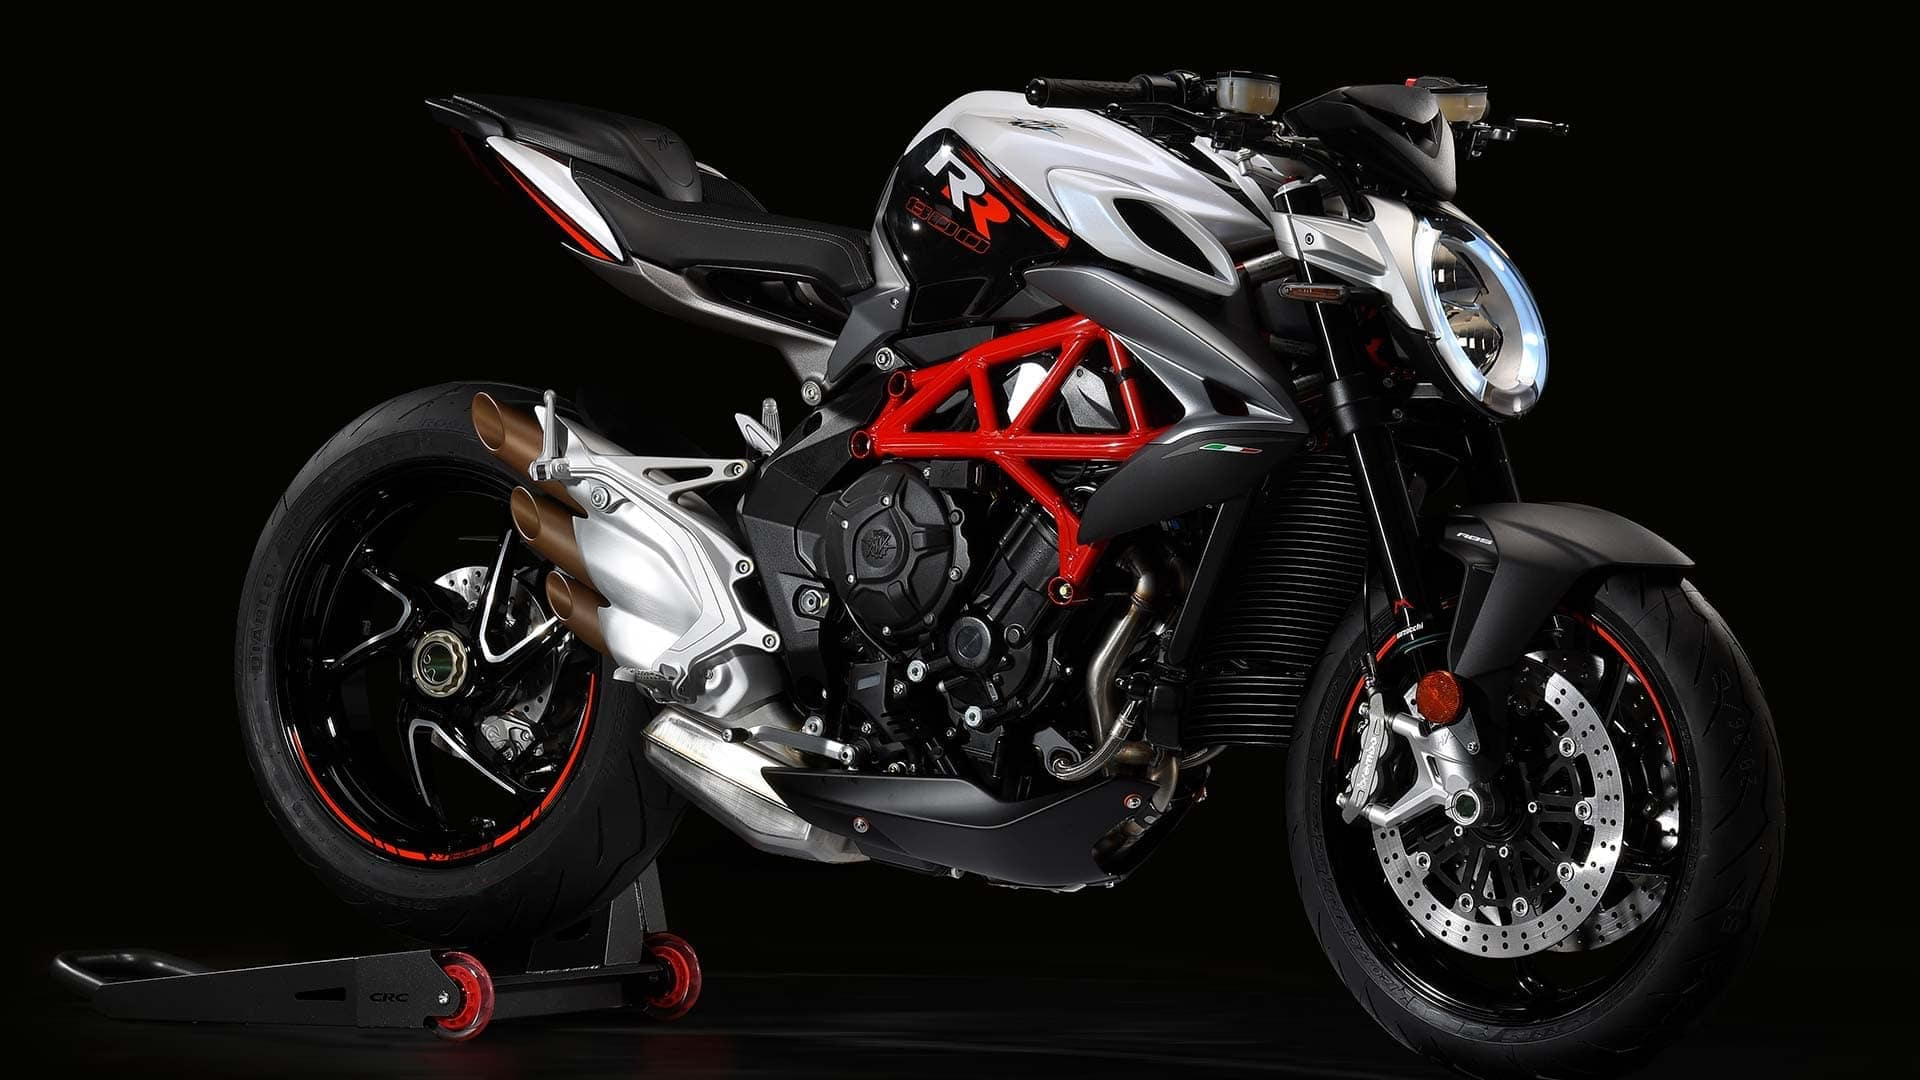 The MV Augusta Brutale is an aesthetic work of art, and an instant classic motorcycle.